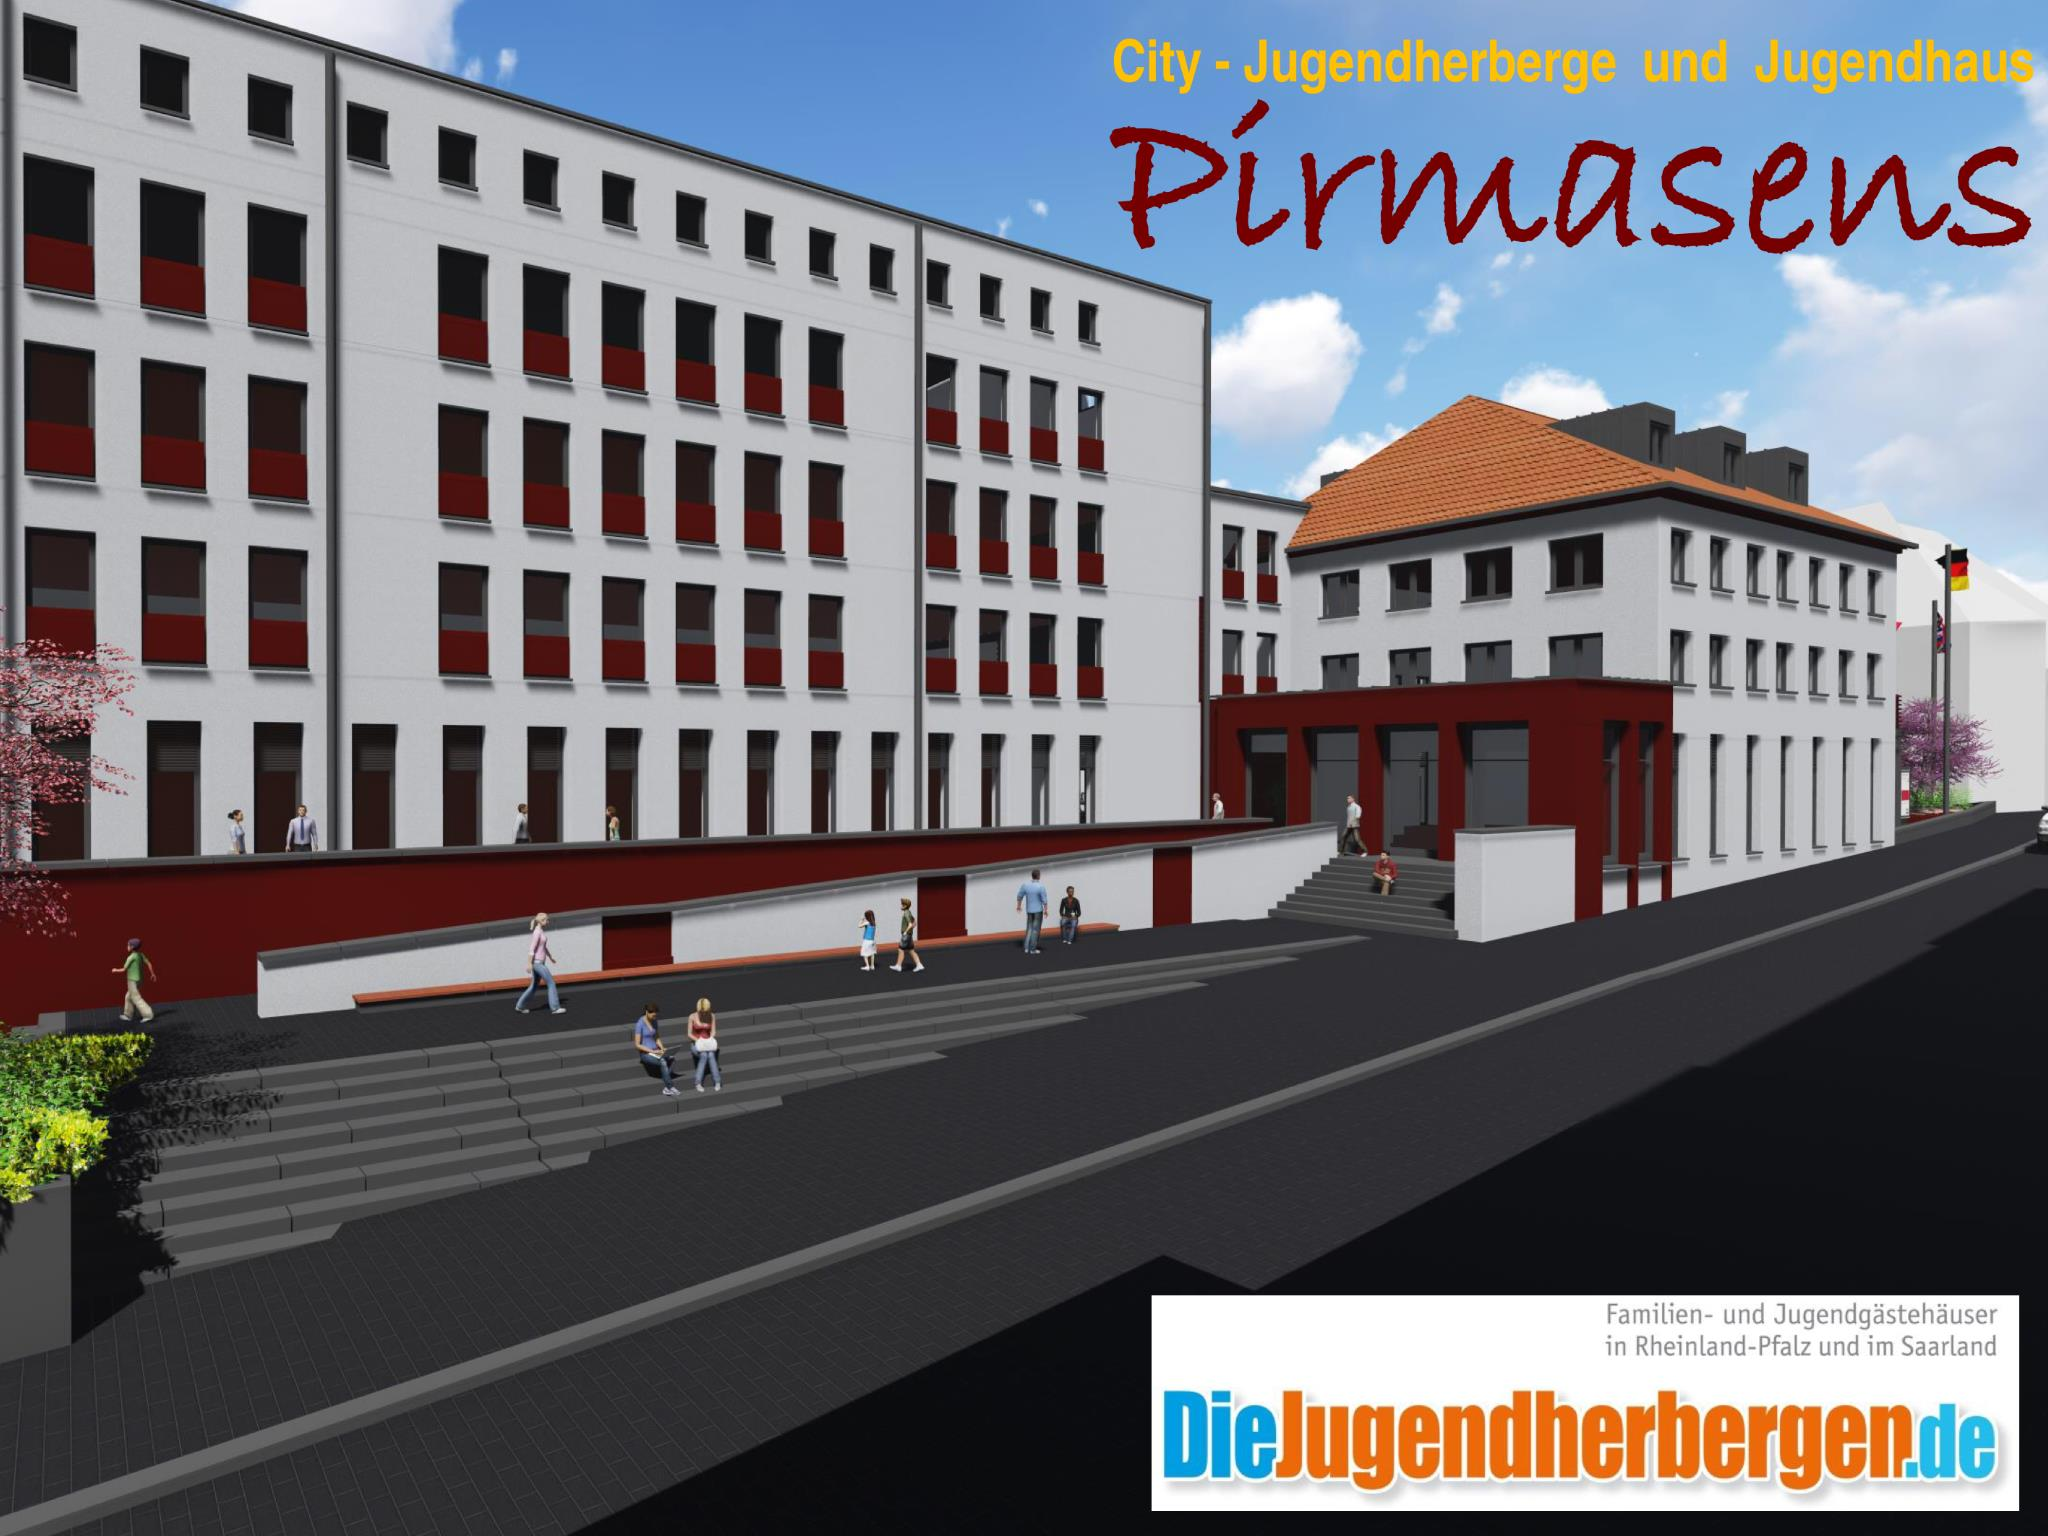 Single pirmasens